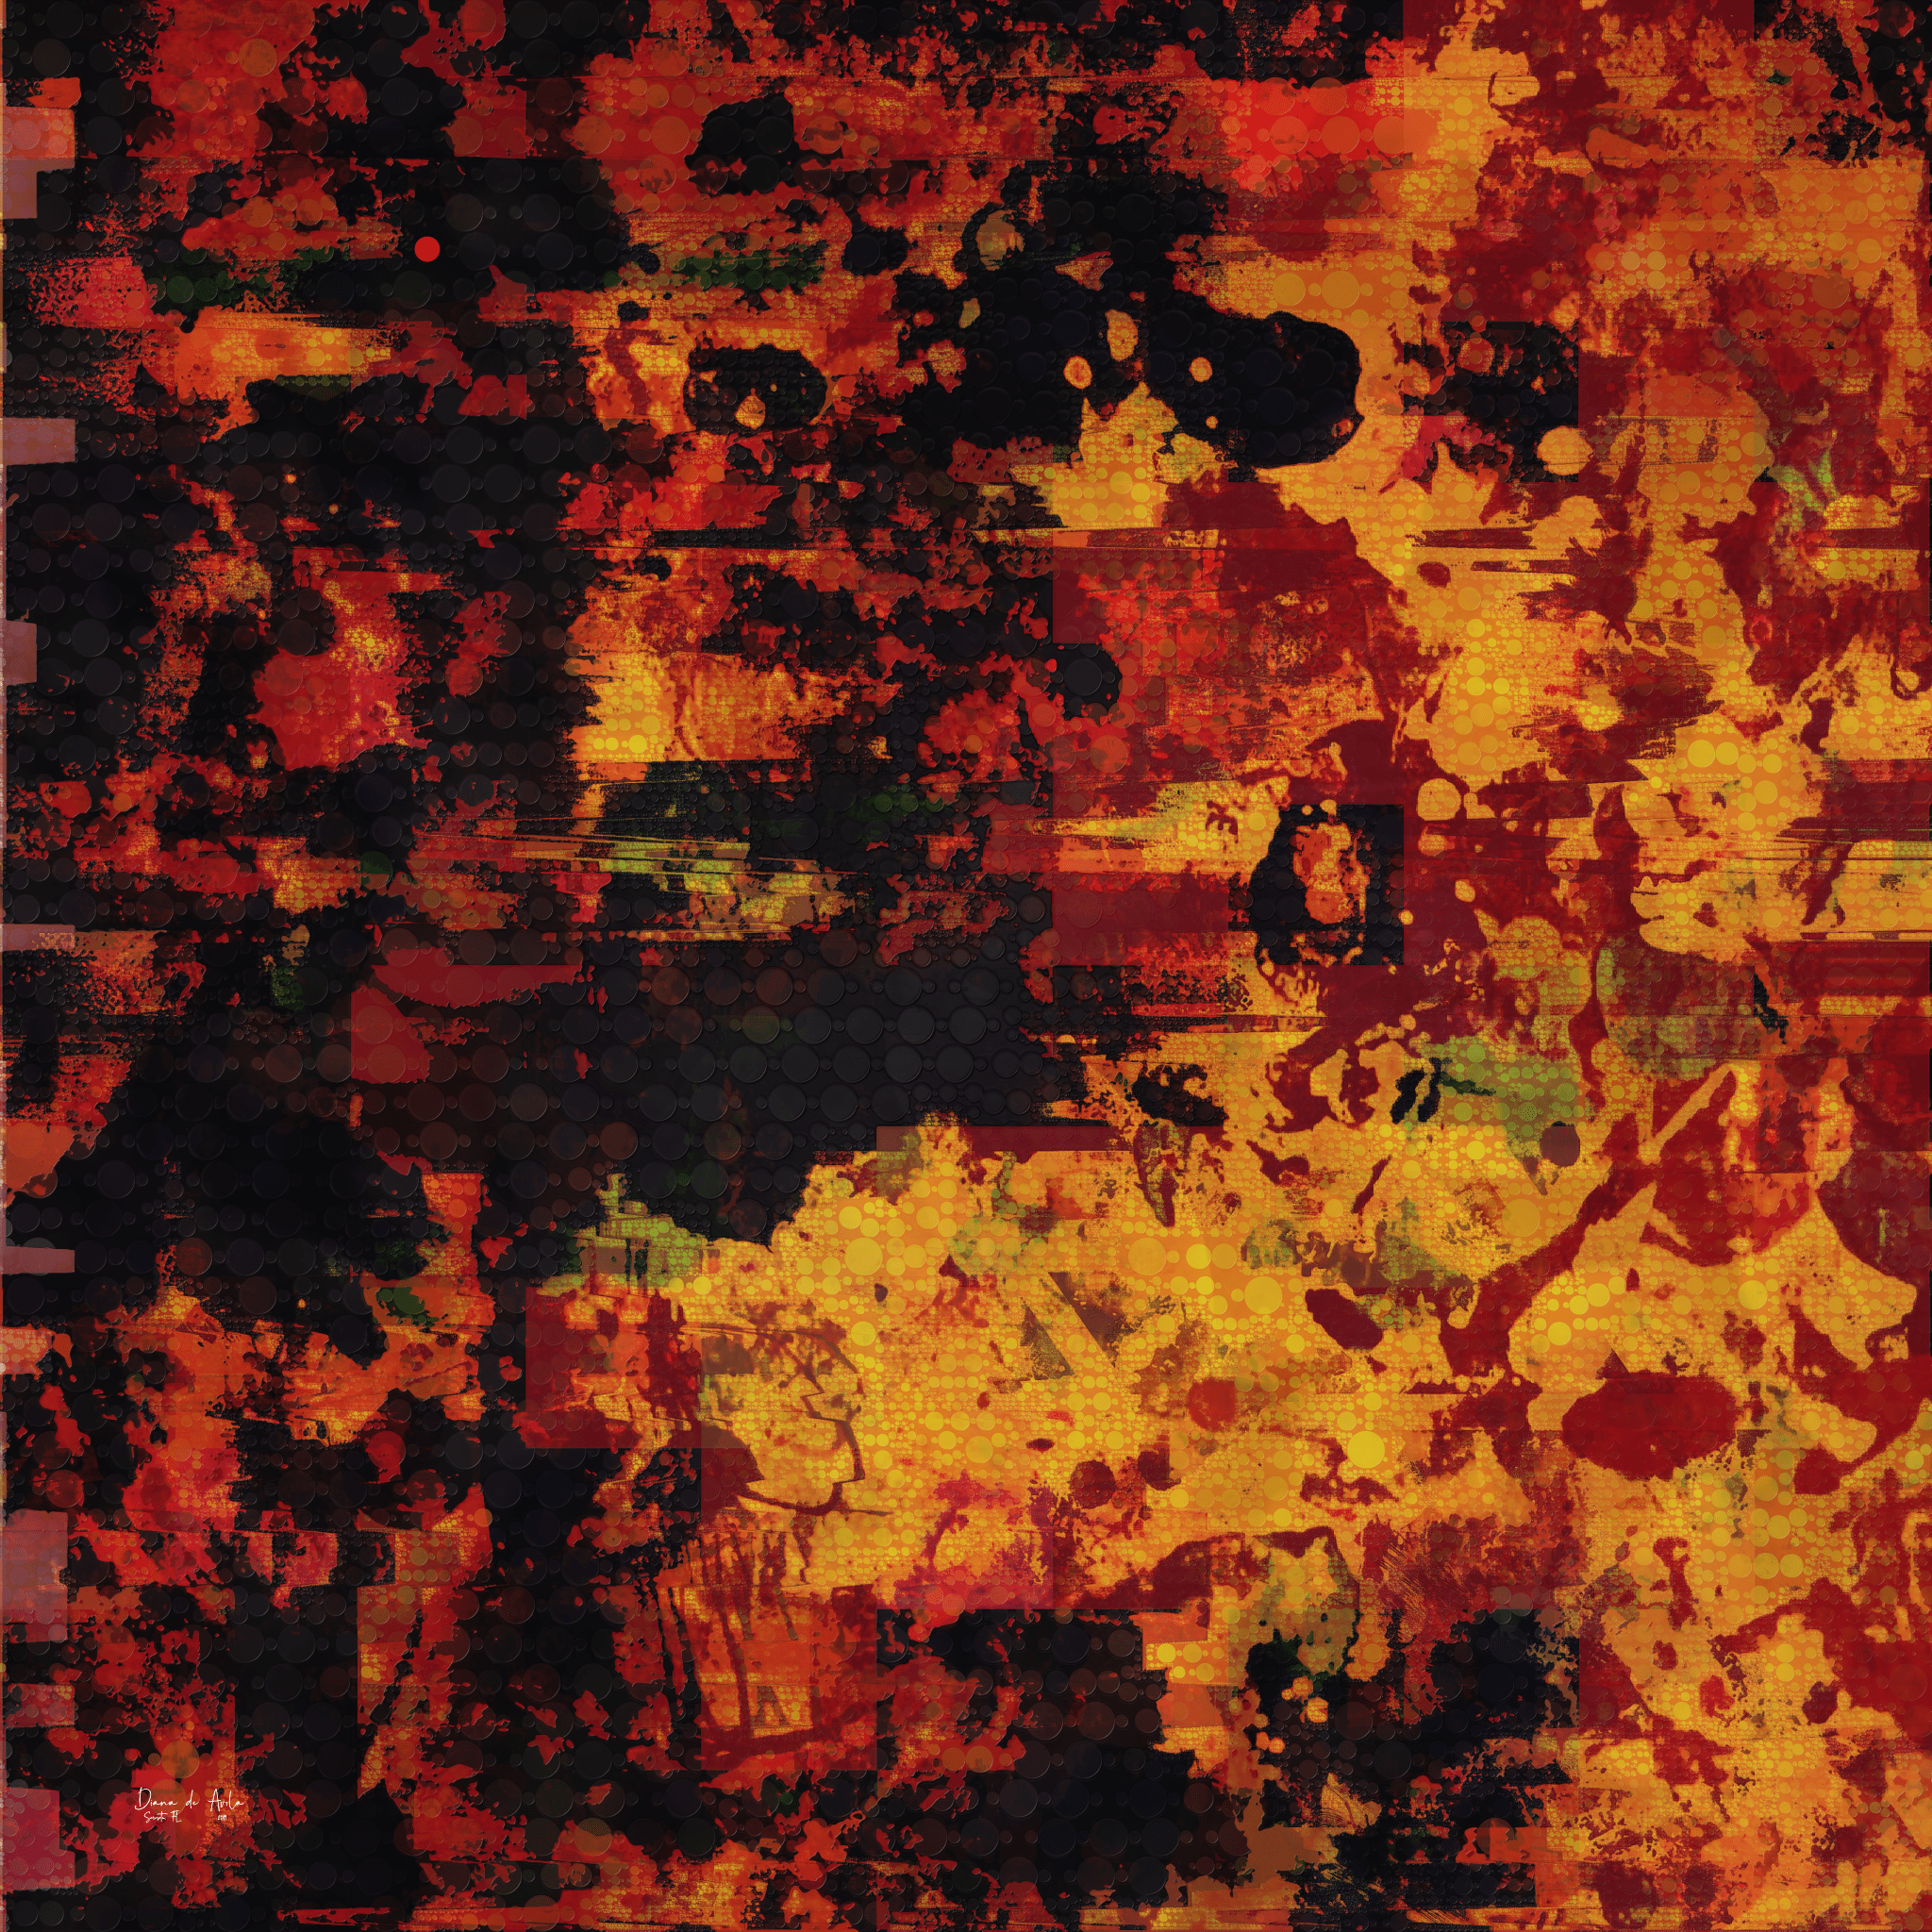 """""""Scorched"""" - an entirely different mood!  Evoking it through color and composition."""